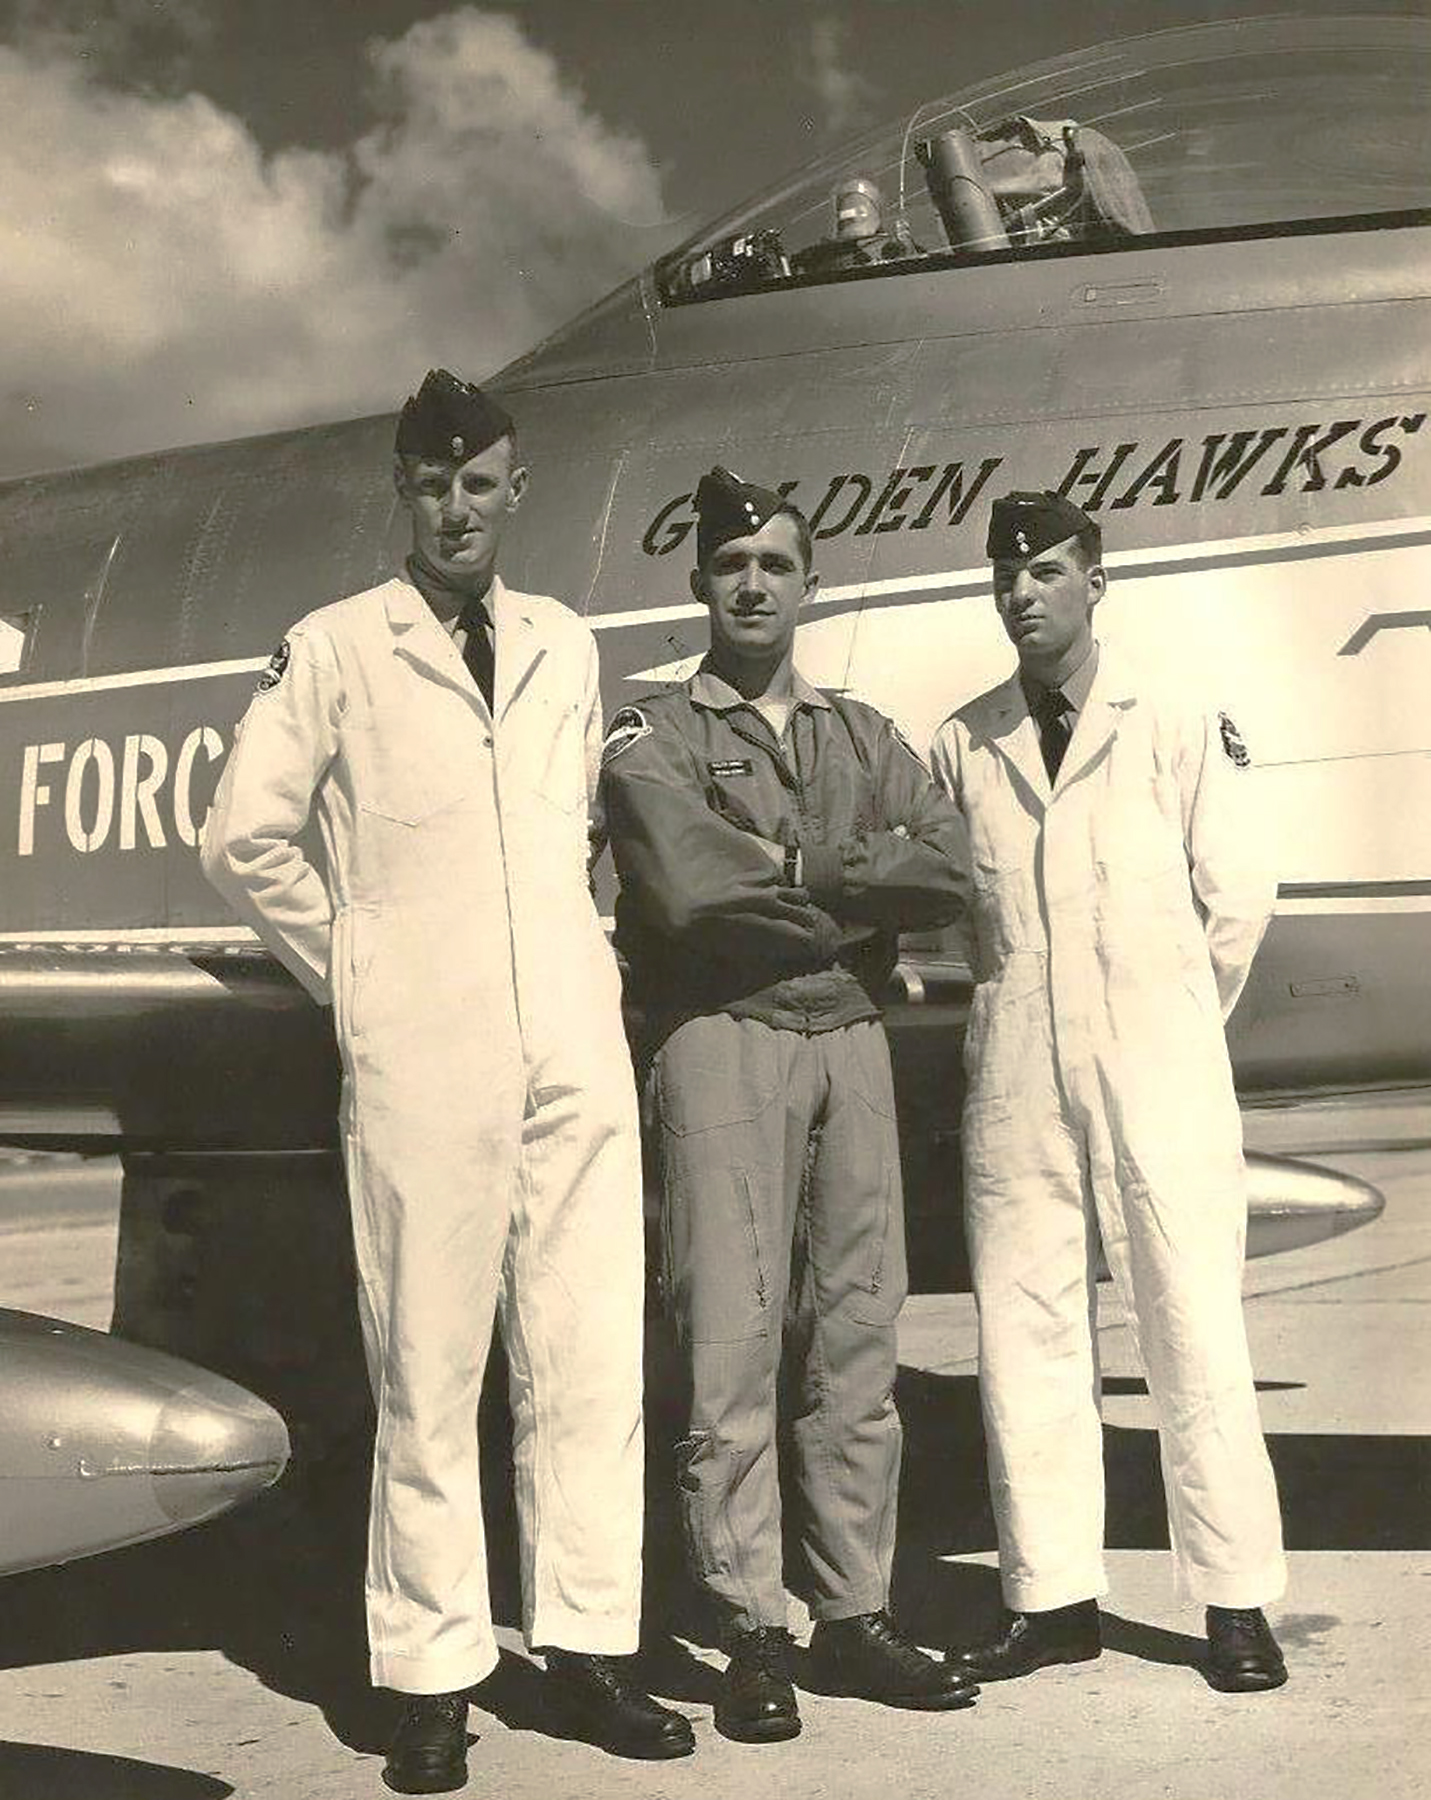 In 1960, Flight Lieutenant Ralph Annis, Golden Hawk lead solo (centre), stands with Golden Hawks air demonstration team crewmen Leading Aircraftman John Elmose and Leading Aircraftman Mick Nordeen. PHOTO: RCAF, courtesy of Dan Dempsey